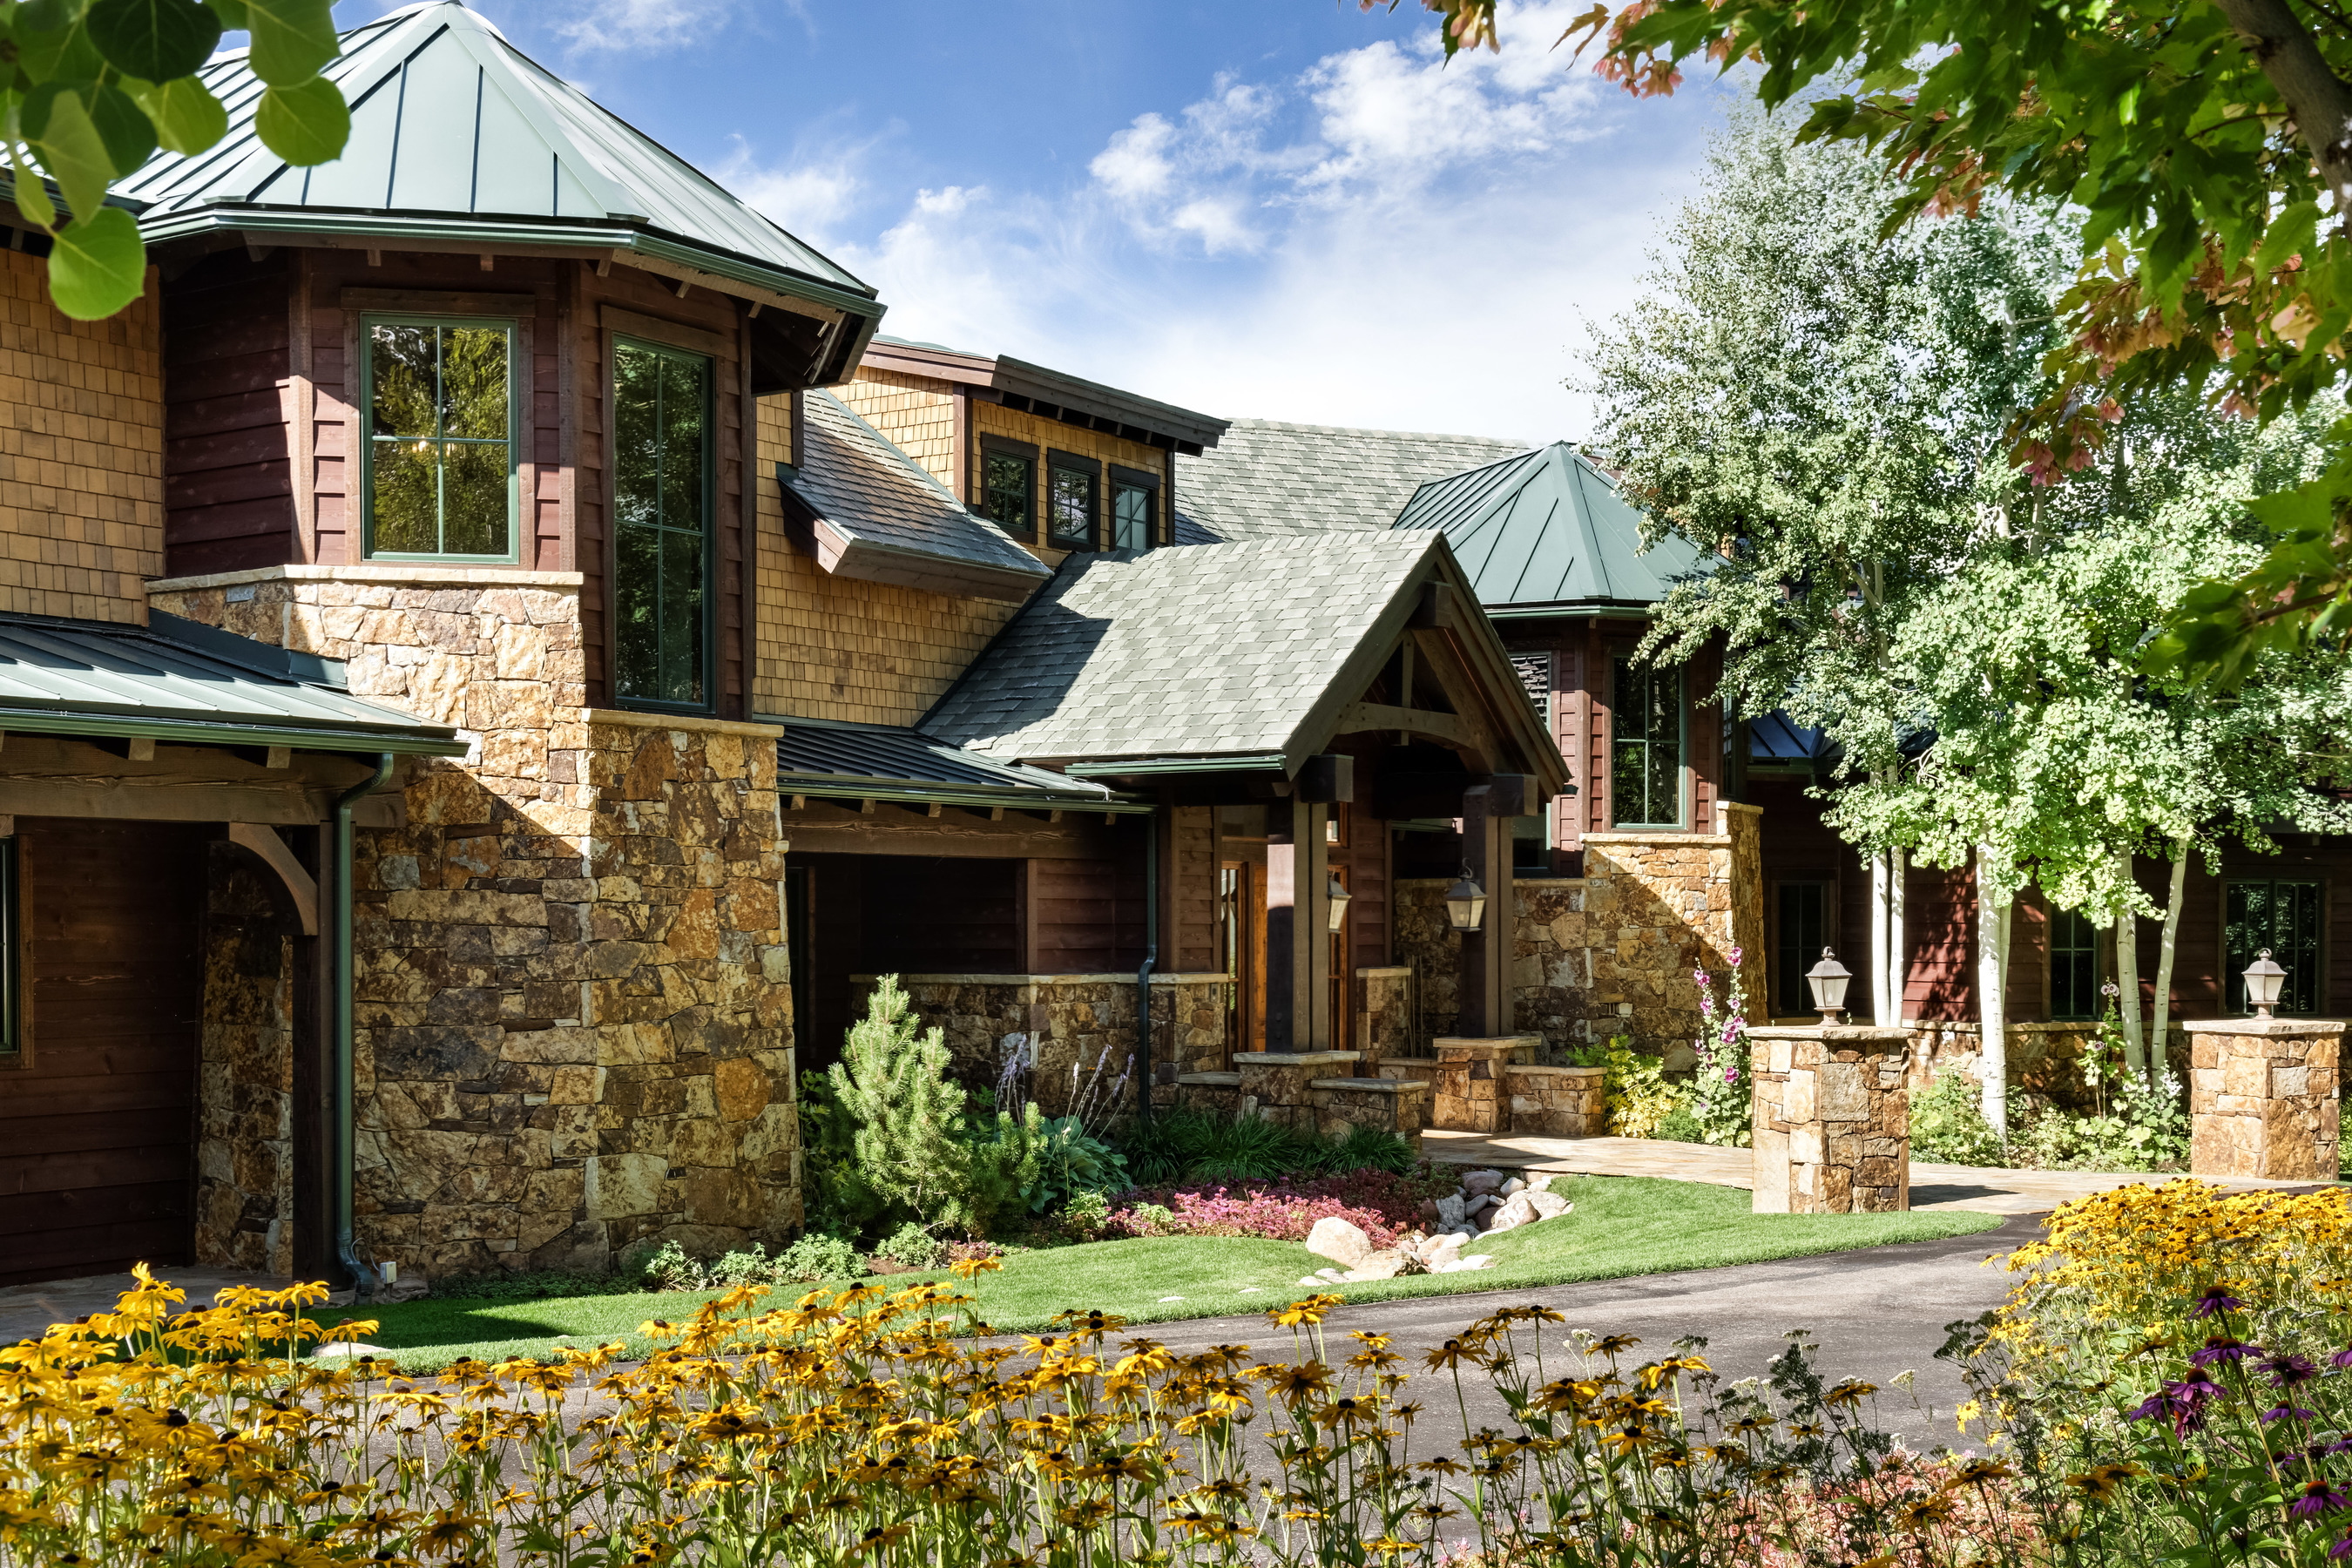 Single Family Home for Active at Magnificent Panorama in McLain Flats 2016 McLain Flats Road Aspen, Colorado 81611 United States